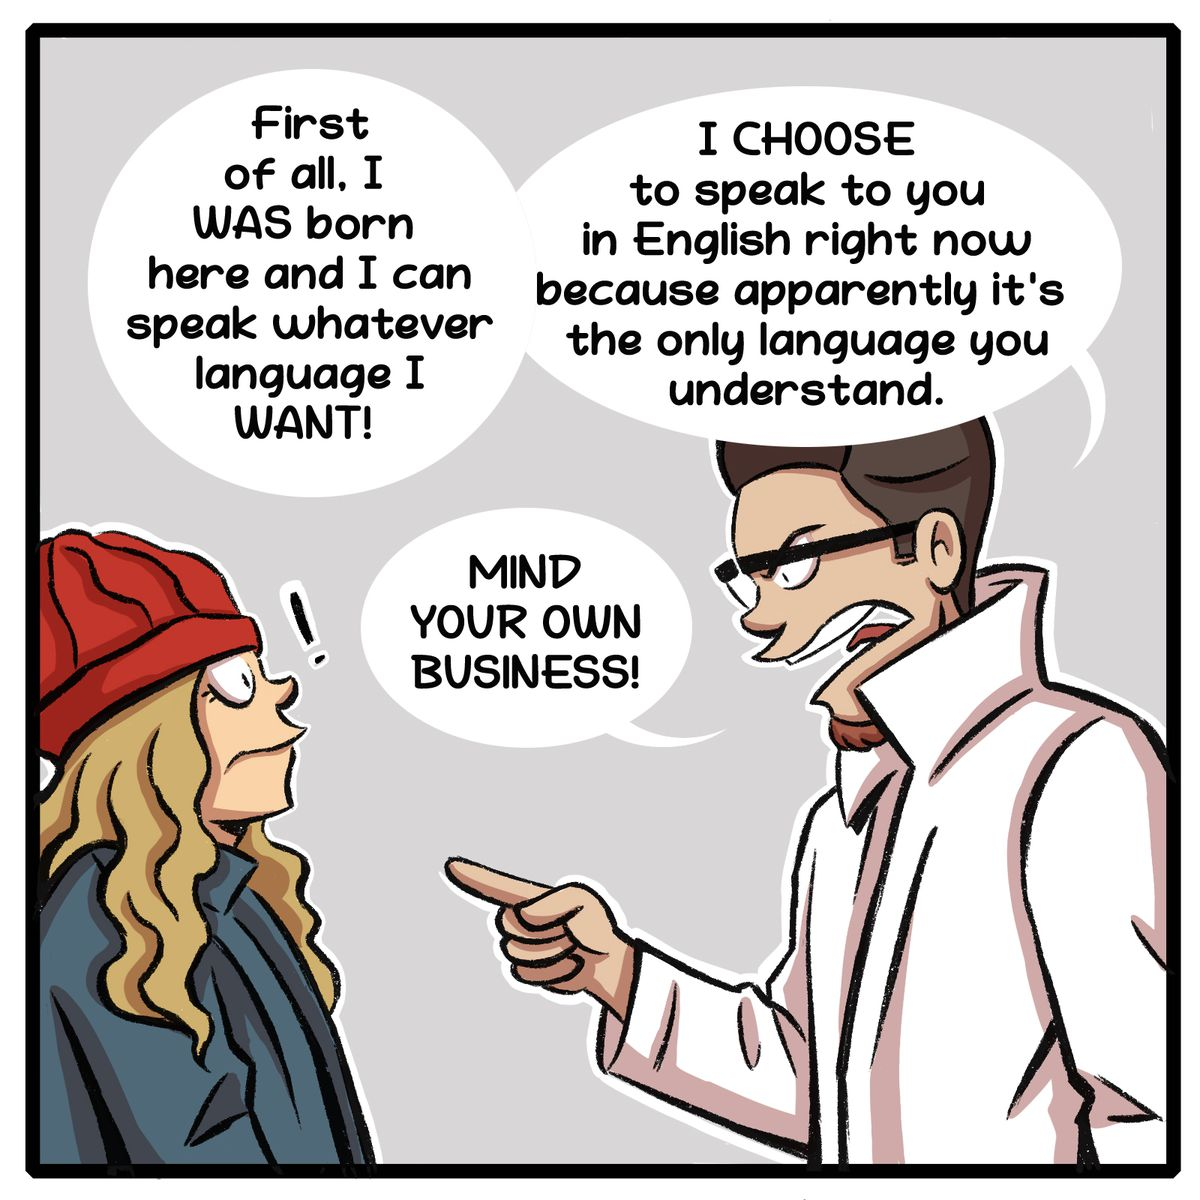 """""""First of all, I WAS born here and I can speak whatever language I WANT! I CHOOSE to speak to you in English right now because apparently it's the only language you understand. MIND YOUR OWN BUSINESS!"""""""